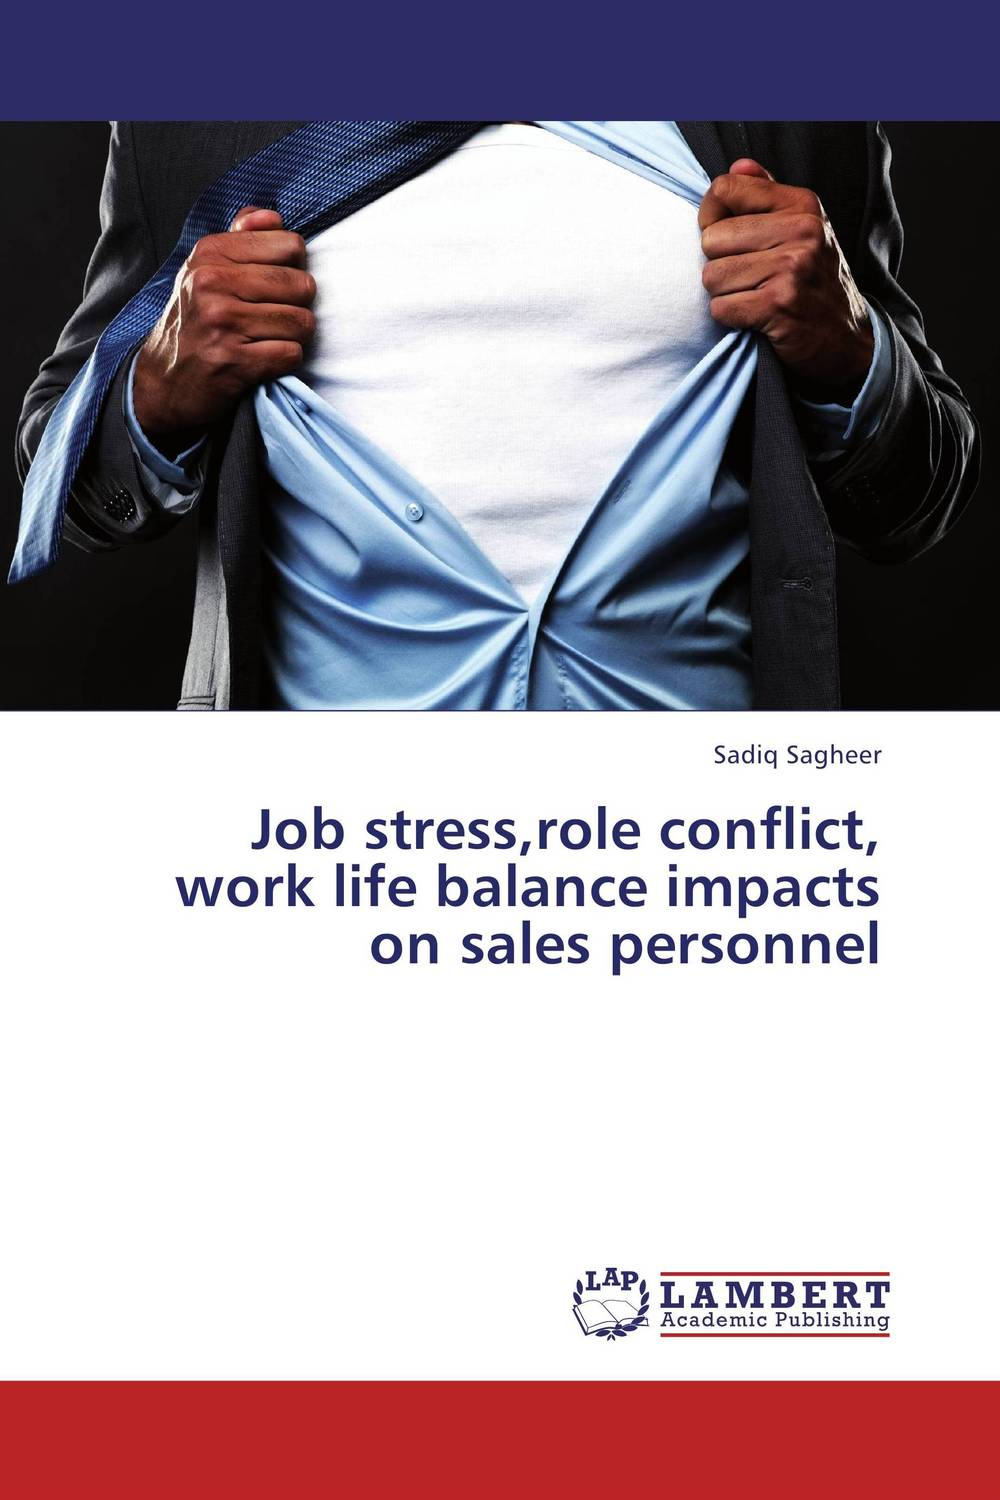 Job stress,role conflict, work life balance impacts on sales personnel sadiq sagheer job stress role conflict work life balance impacts on sales personnel